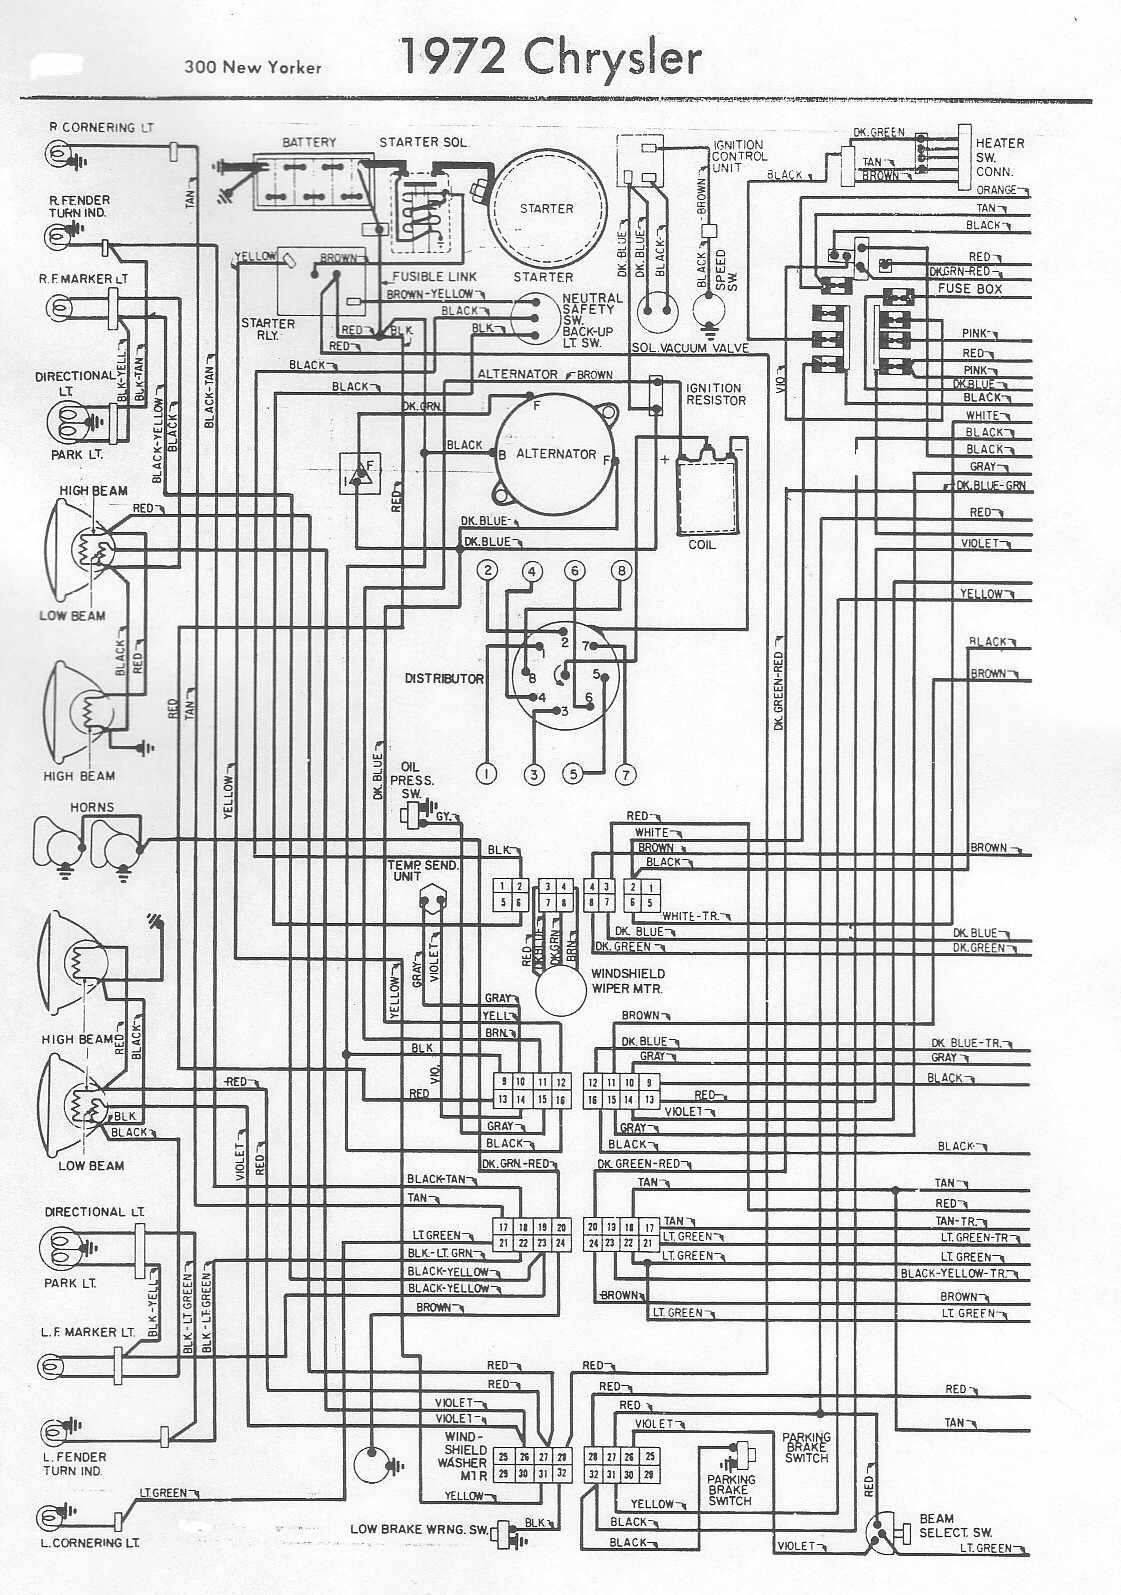 hight resolution of automotive diagrams archives page 275 of 301 wiring wiring diagram automotive diagrams archives page 275 of 301 wiring